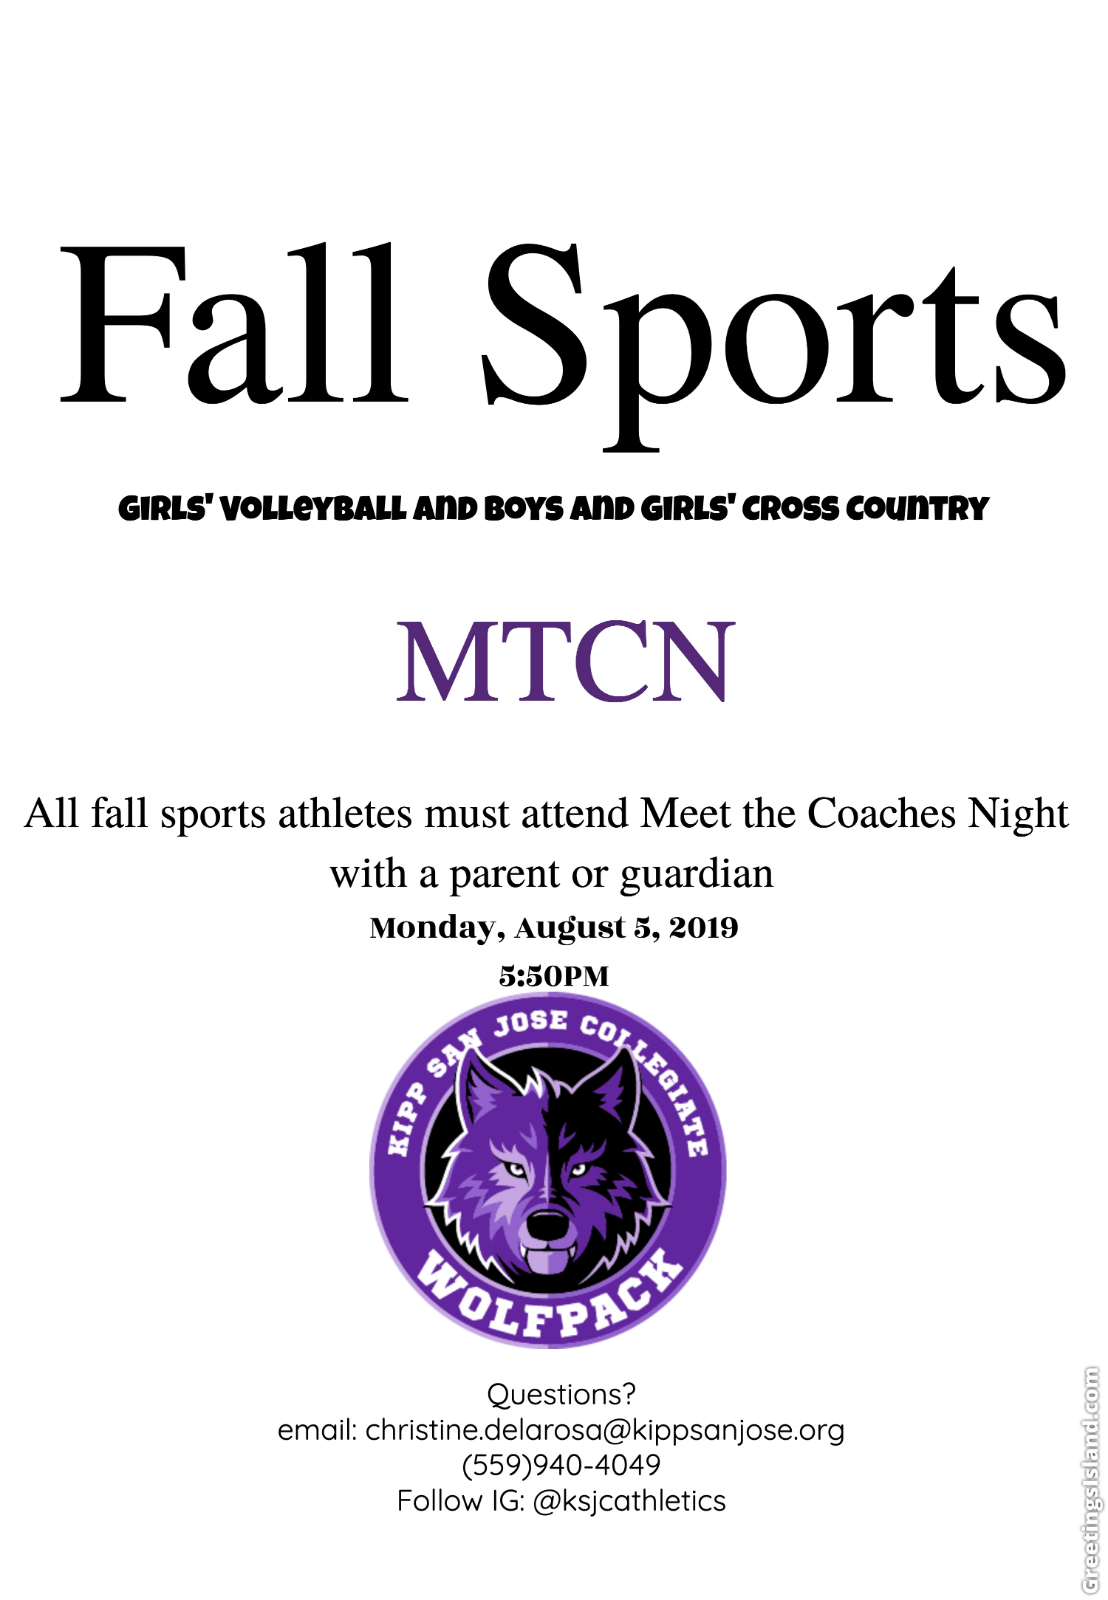 Meet the Coaches Night and Try Out Information for '19-'20 School Year